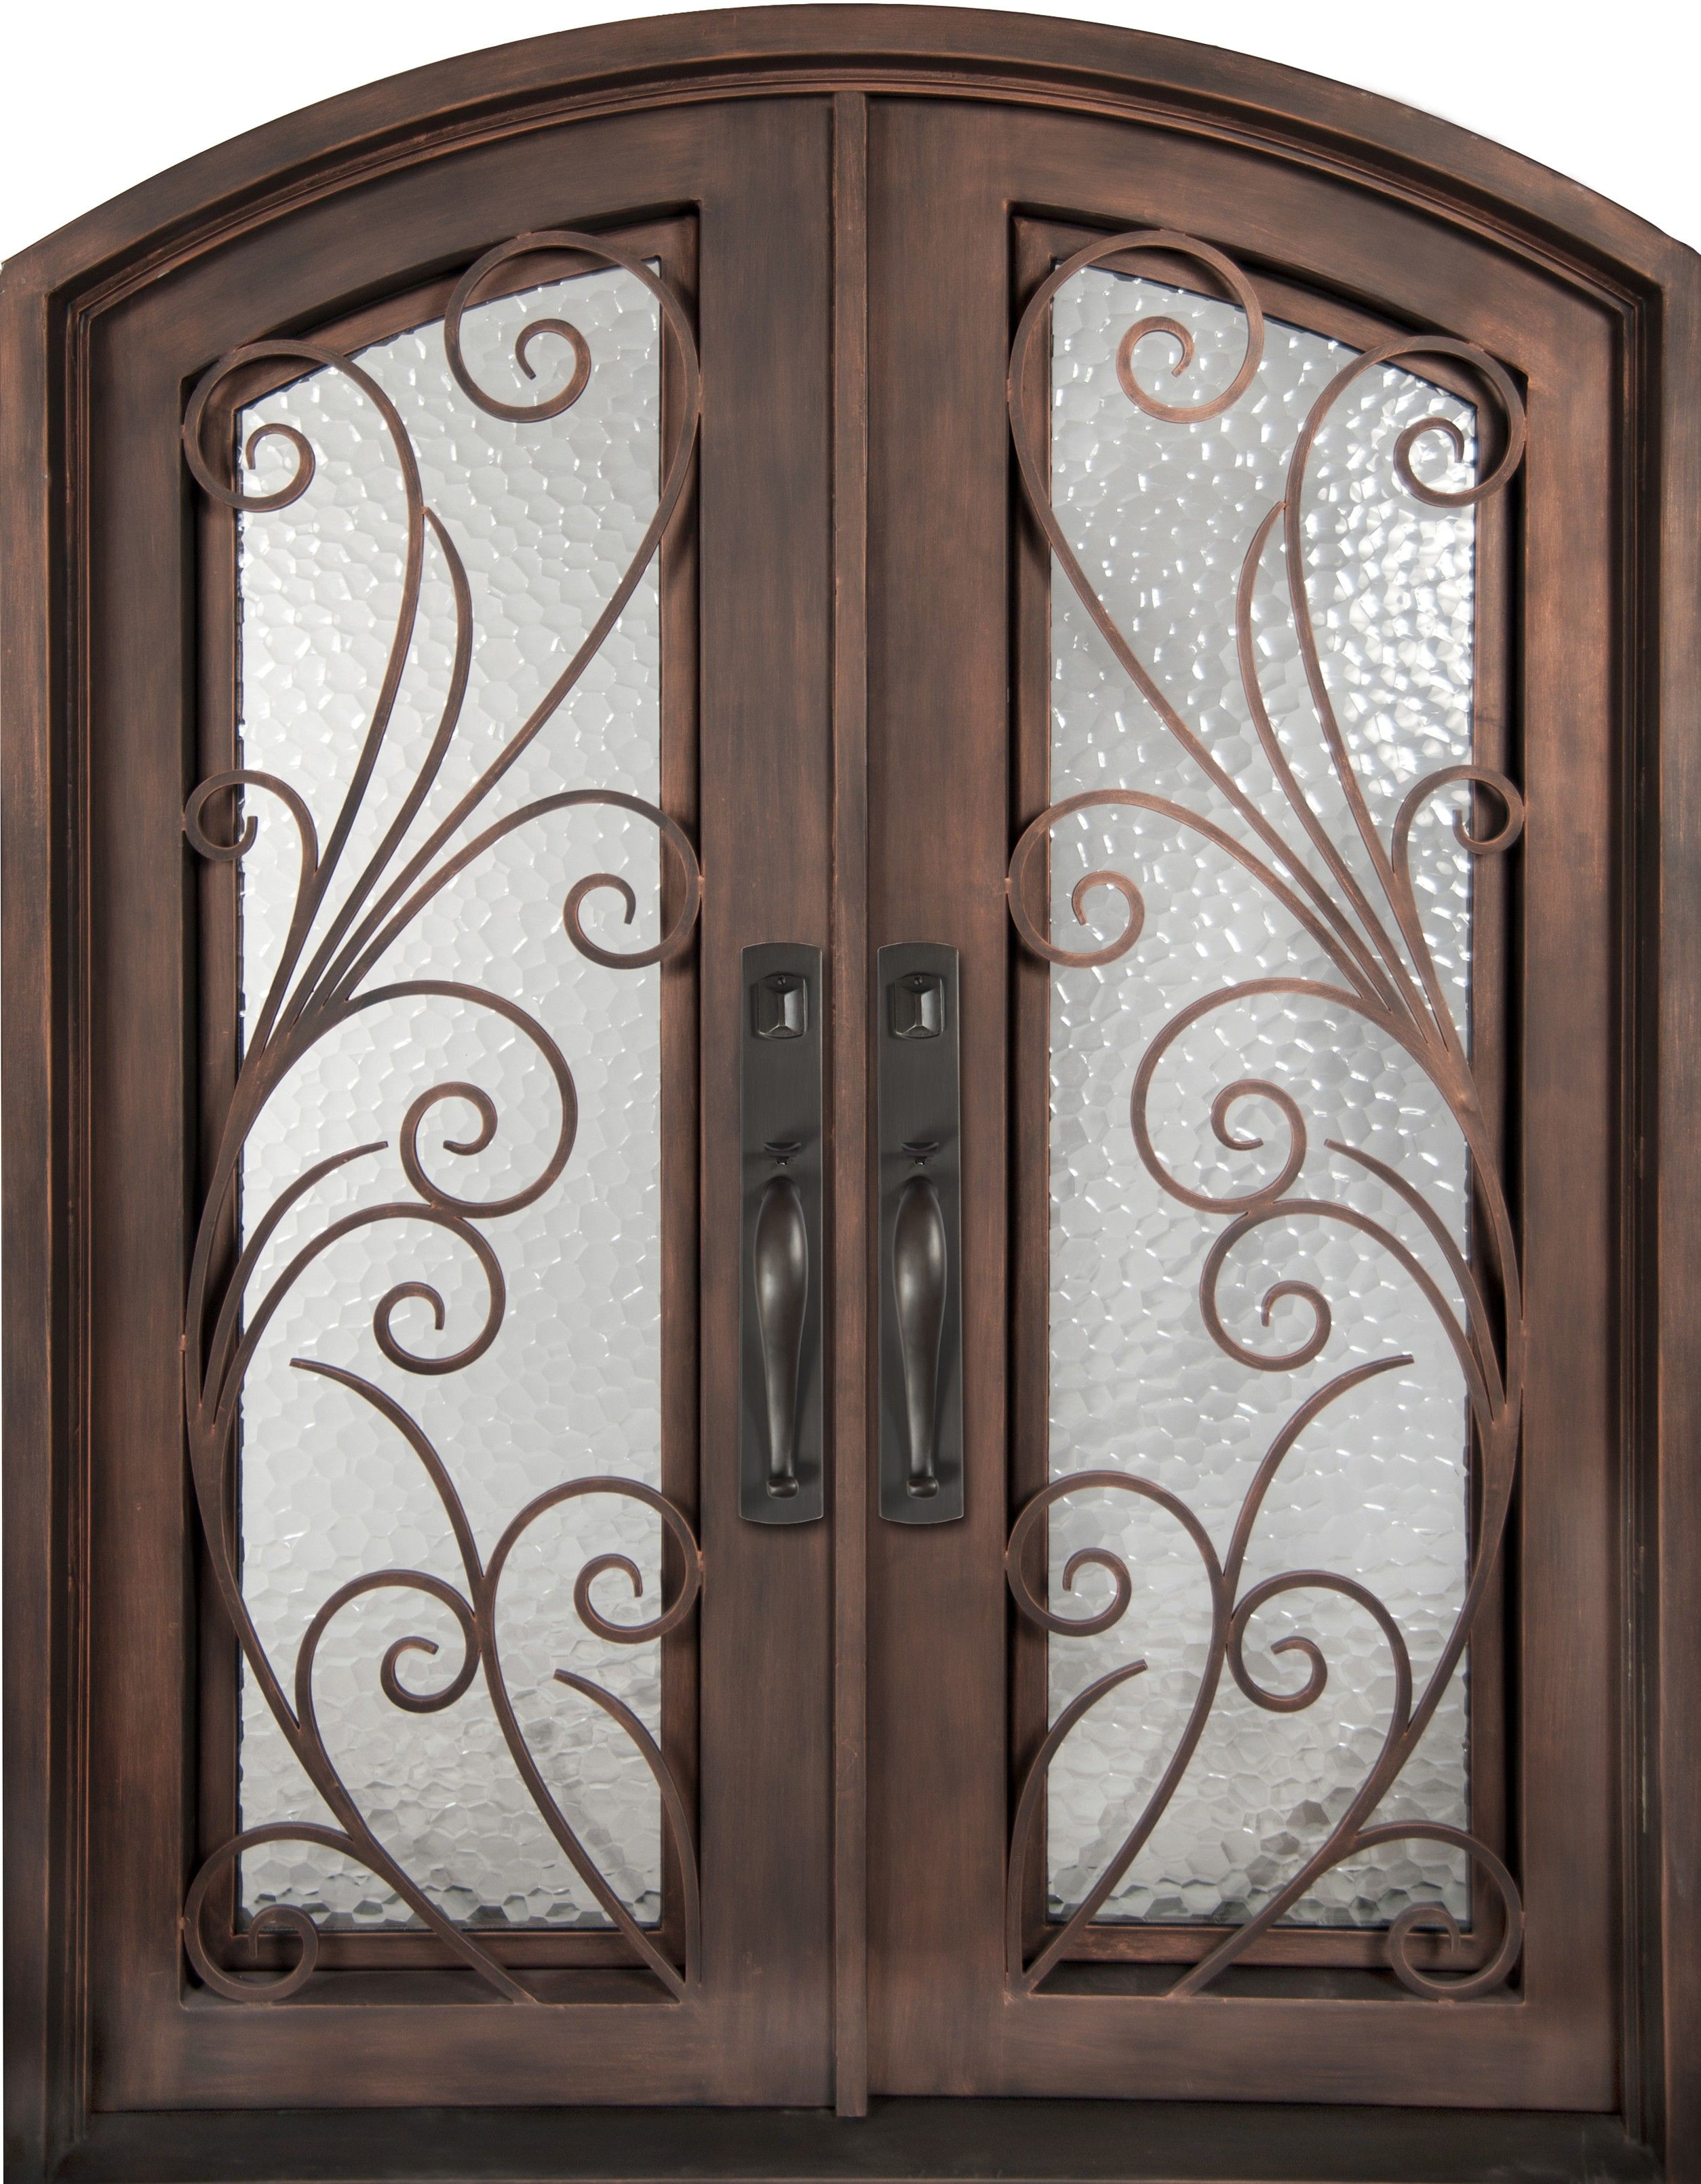 Iron double front doors las vegas - Beautiful Wrought Iron Exterior Doors At Discount Prices In Houston Texas Hand Forged Grilles With Hand Finished Iron These Front Doors Are Cheap On